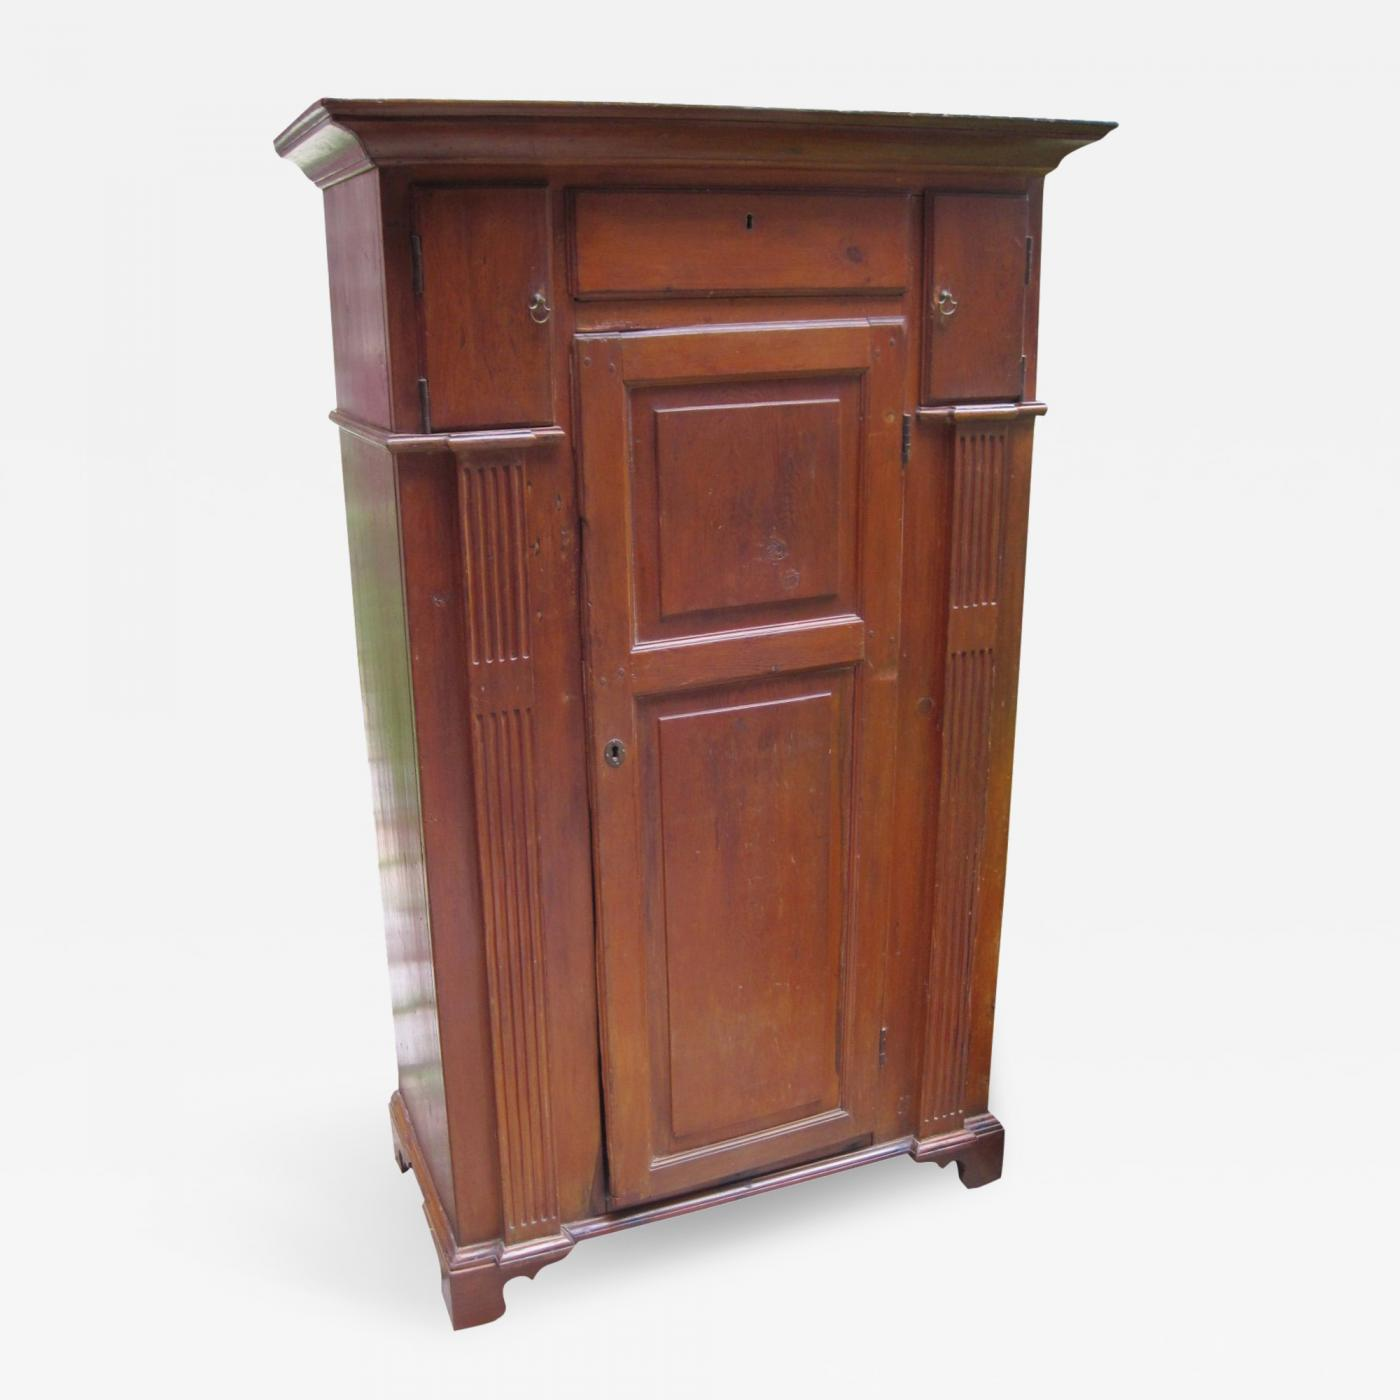 Listings / Furniture / Case Pieces / Cabinets · Antique Pine Cupboard - Antique Pine Cupboard